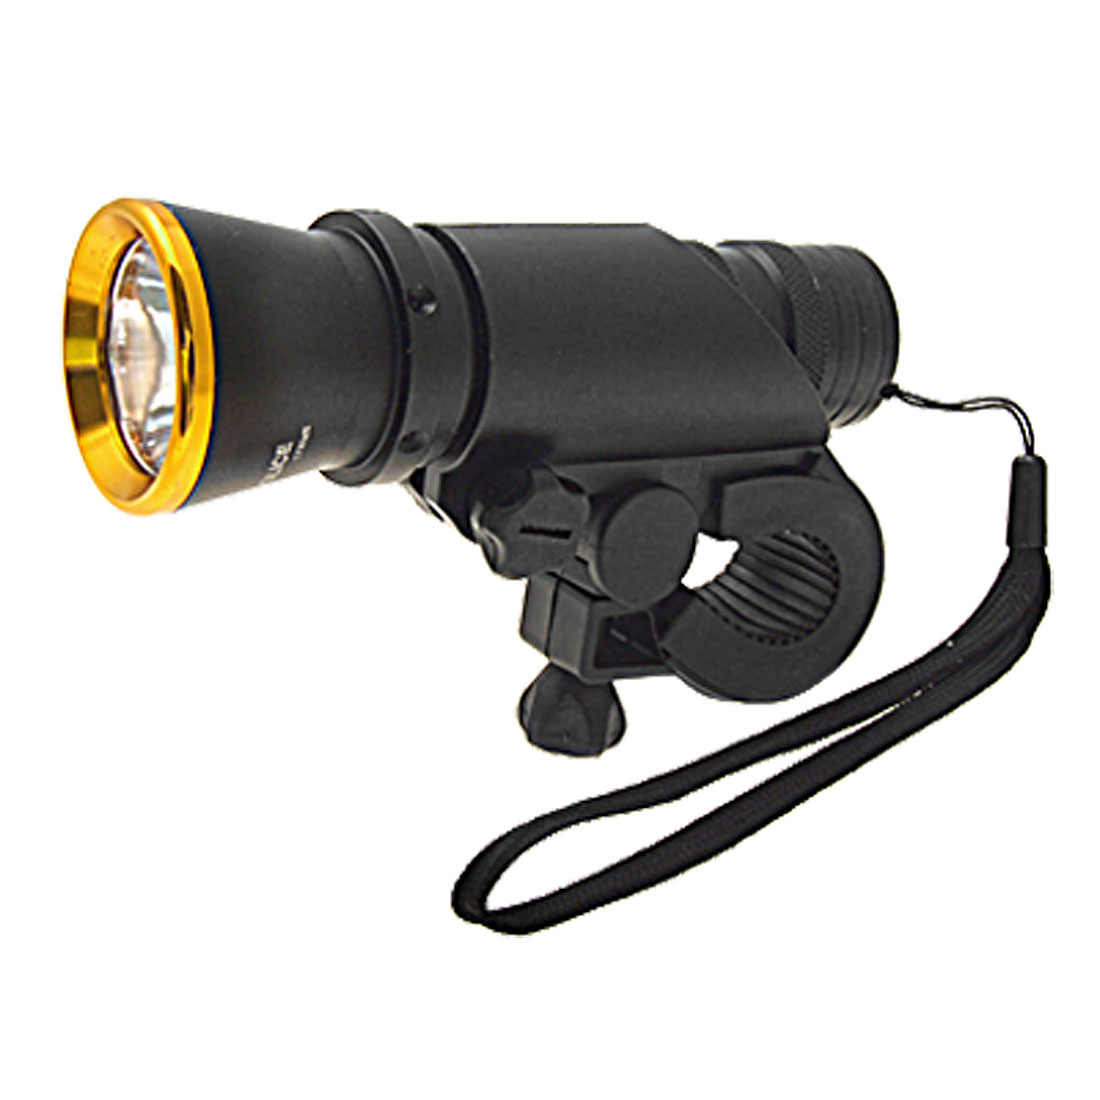 Bright LED Bike Bicycle Alloy Flashlight Hand Torch